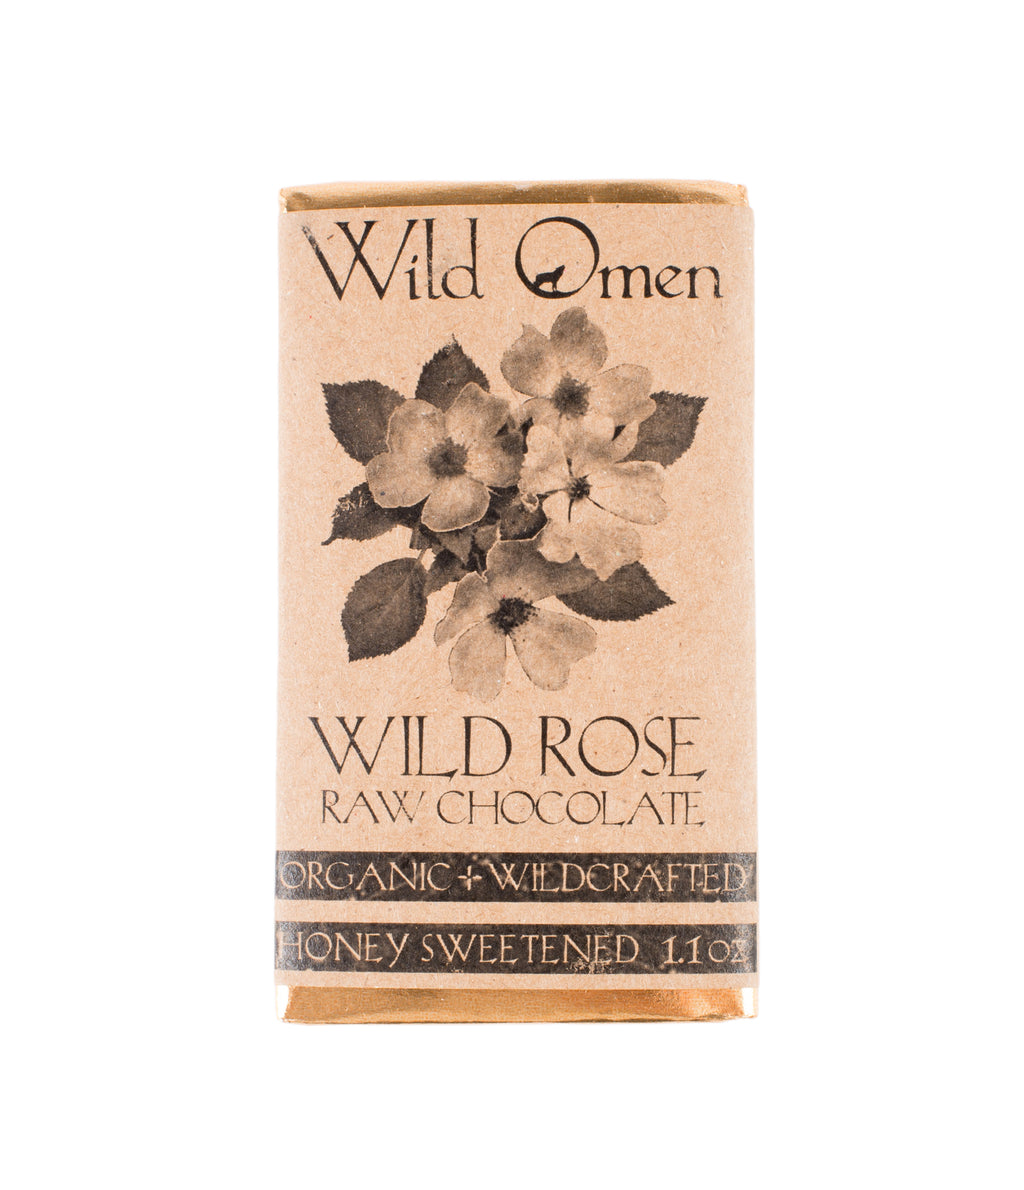 Wild Omen Wild Rose Raw Chocolate